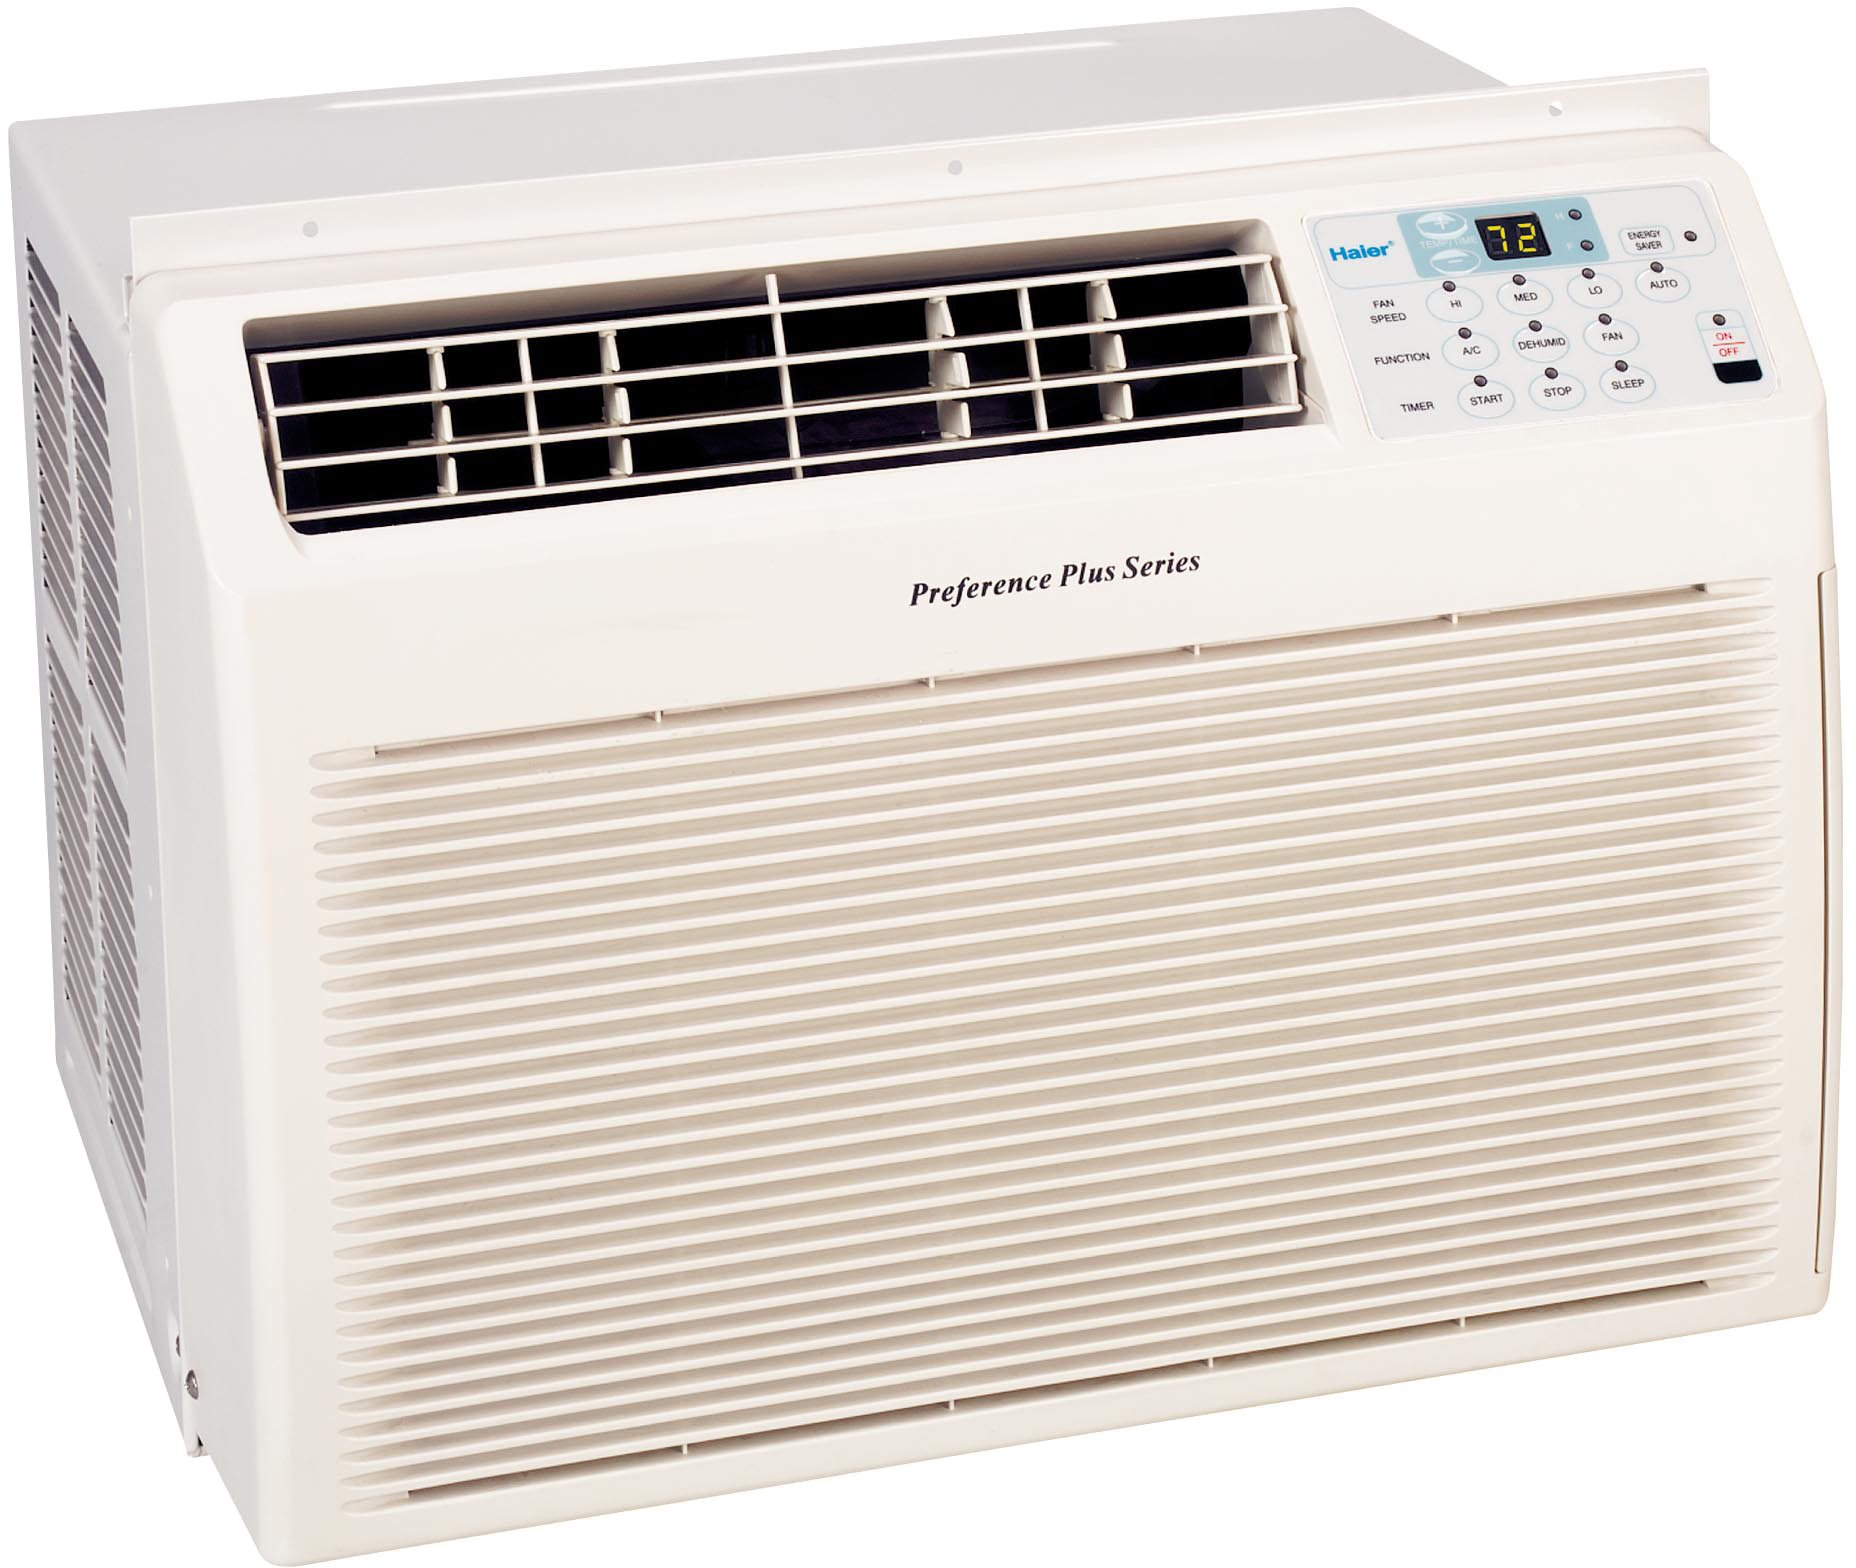 air conditioner shop air conditioner units for windows or walls at #437788